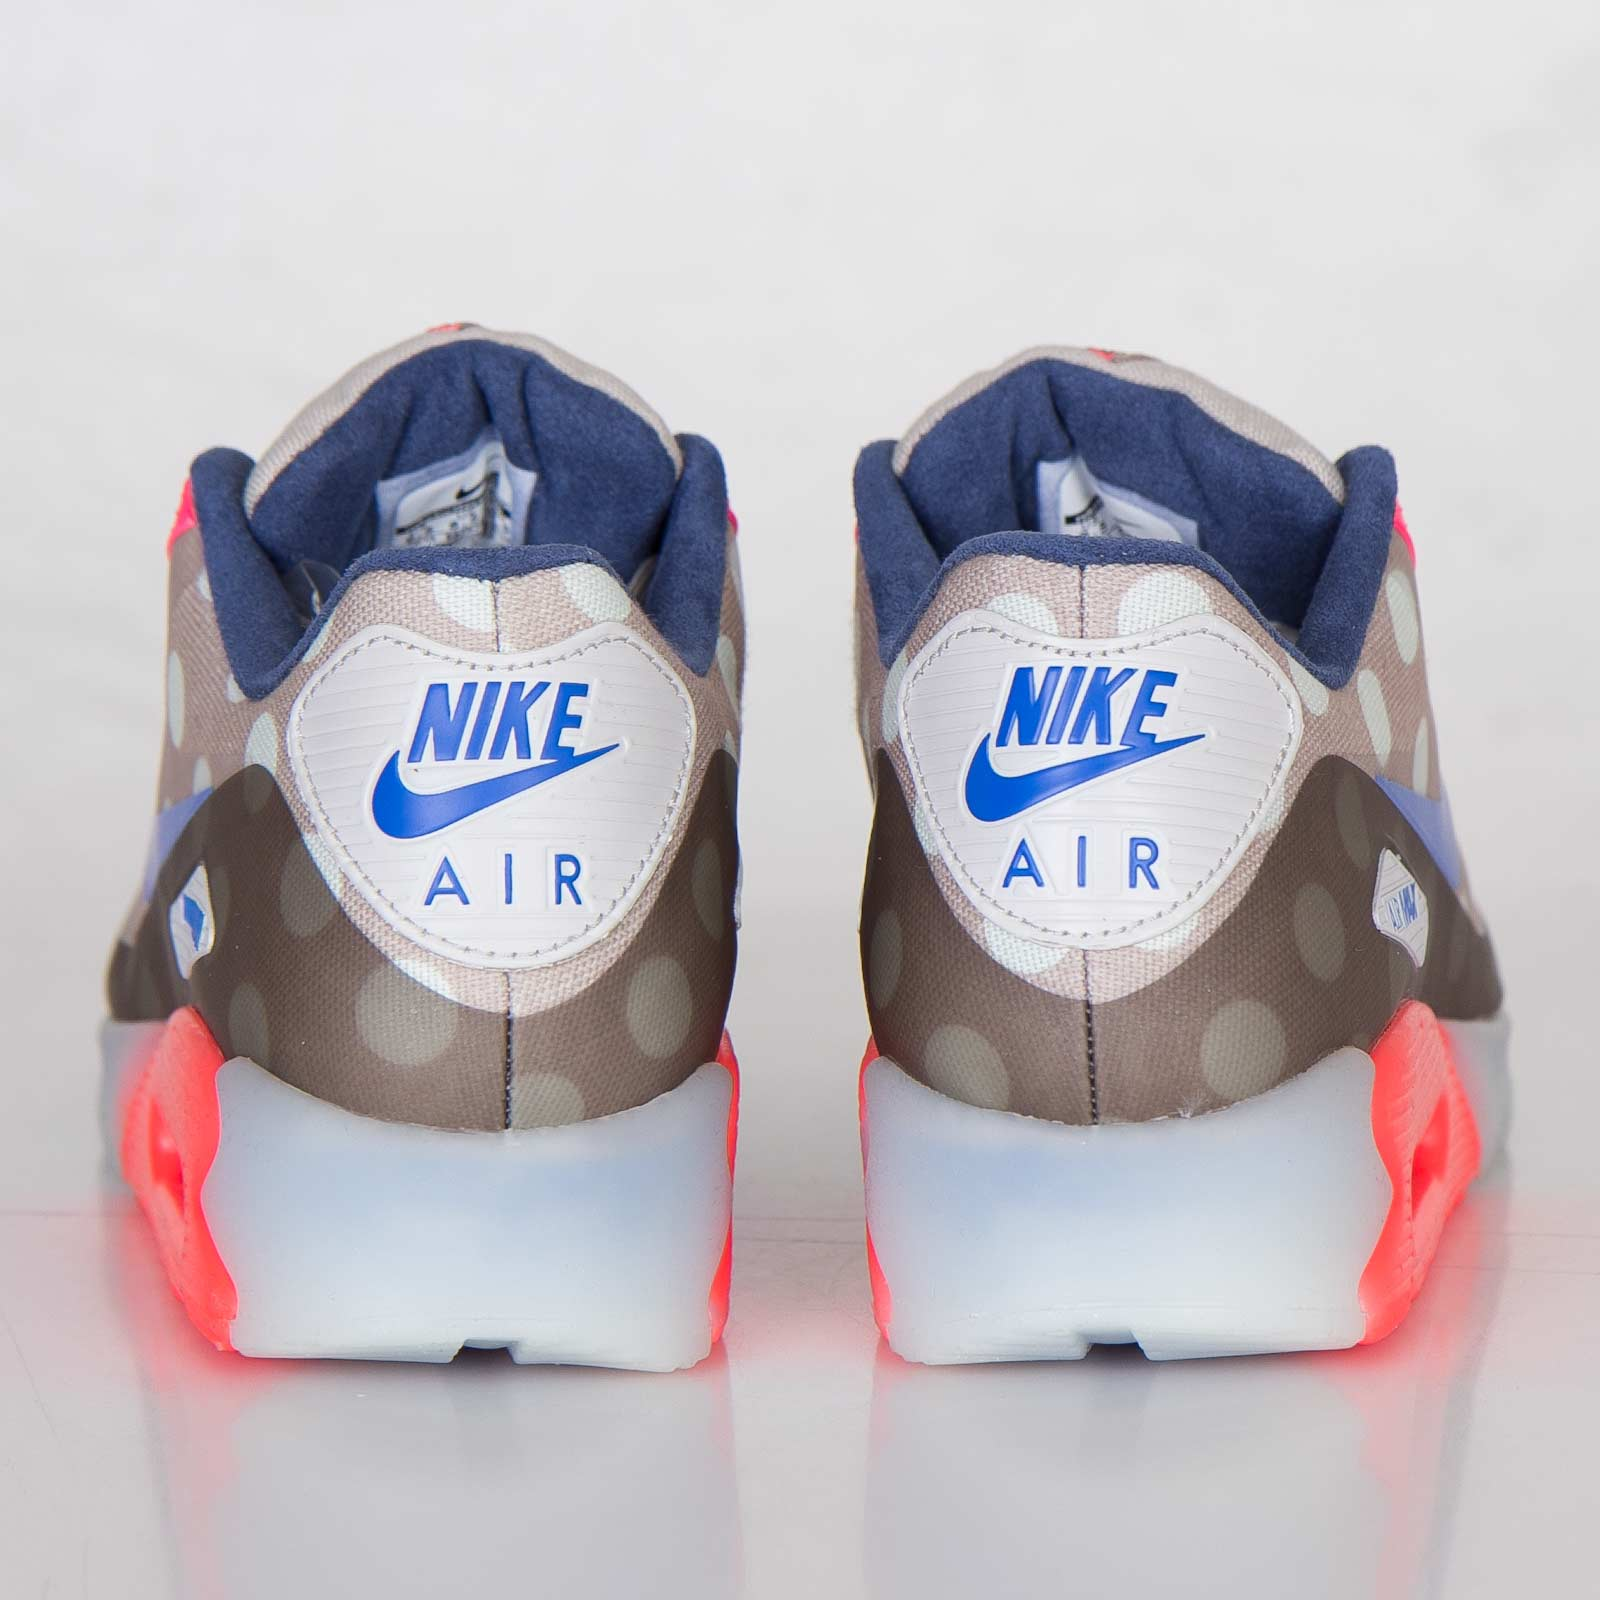 best loved 693fa 1c07e Nike Air Max 90 Ice City QS - 667635-001 - Sneakersnstuff   sneakers    streetwear online since 1999